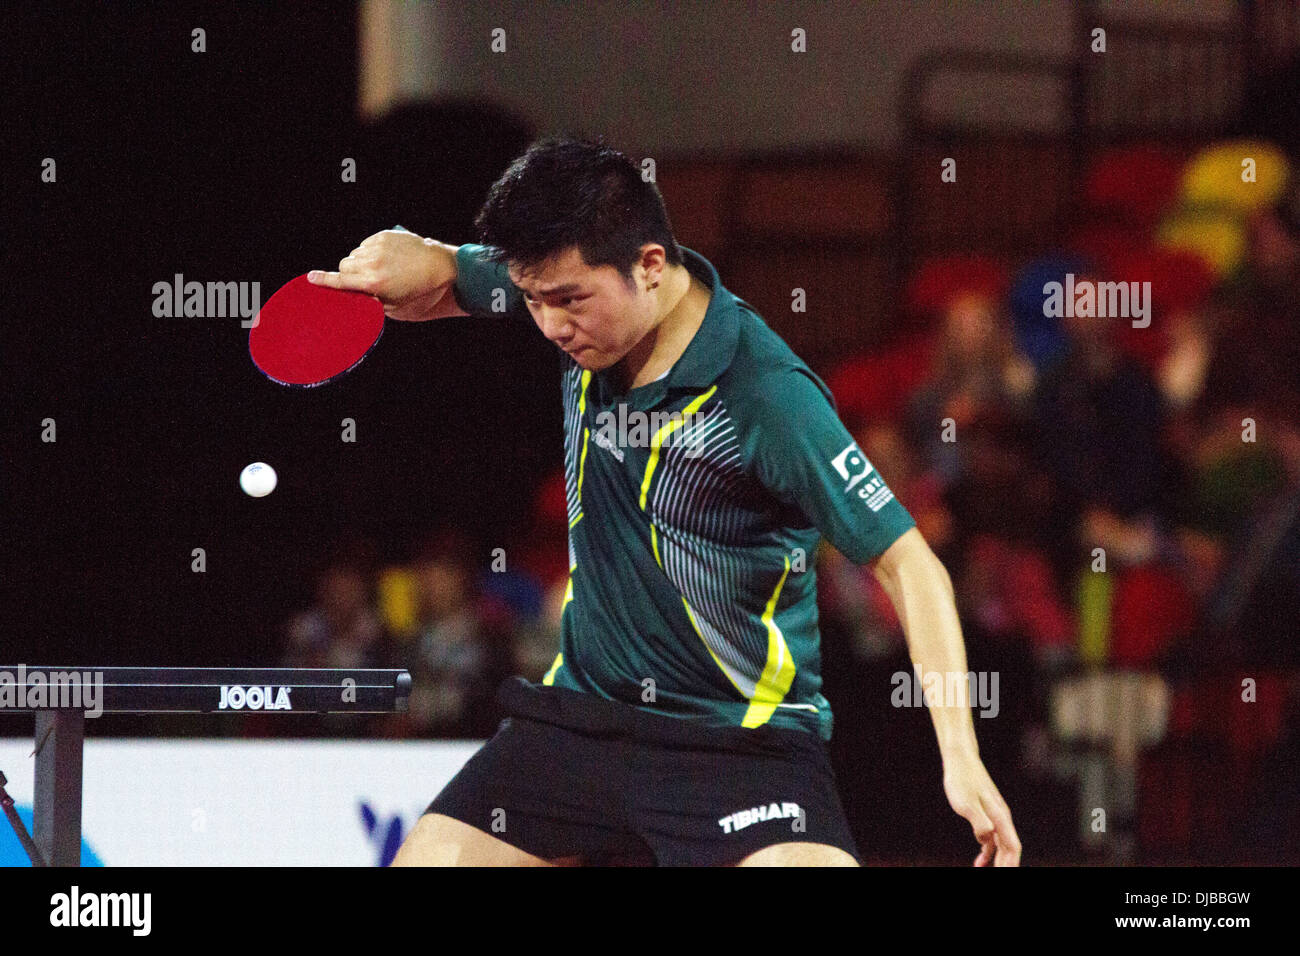 Erick Higa Of Brazil V GB In The Table Tennis At National Paralympic Day Copper Box Queen Elizabeth Olympic Park